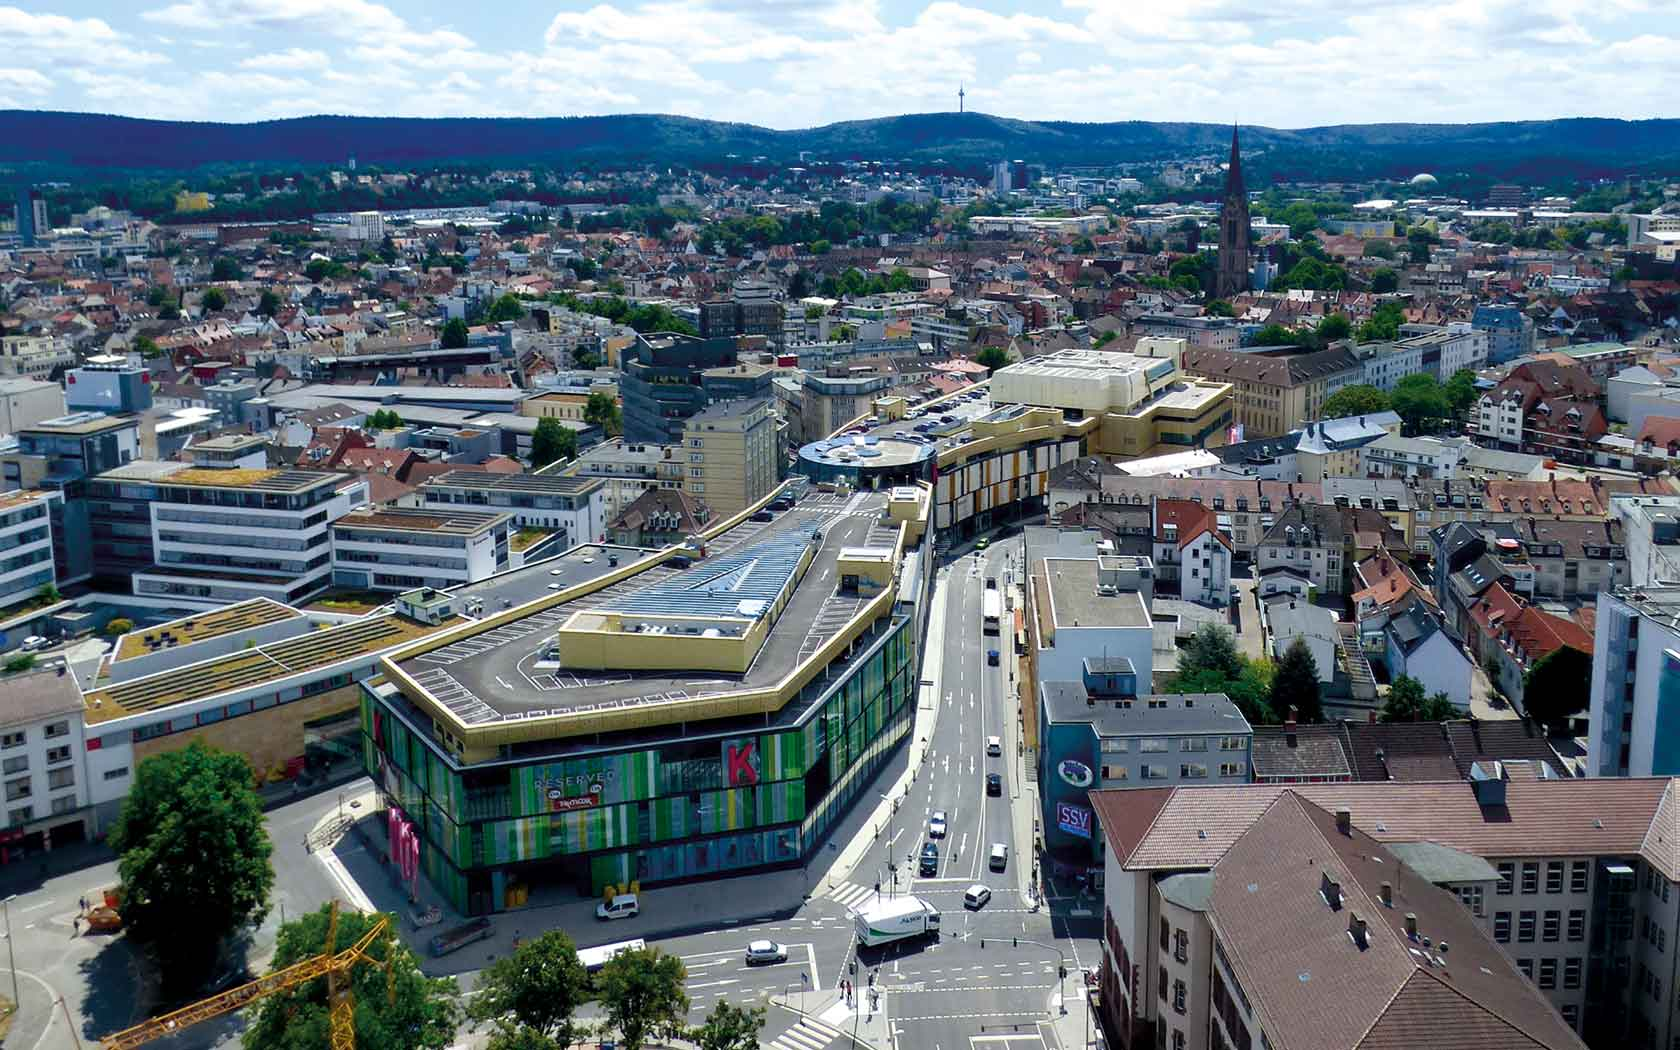 Over the last few years, Kaiserslautern has been extremely successfully  transformed from a former military and industrial location into a high-tech  location